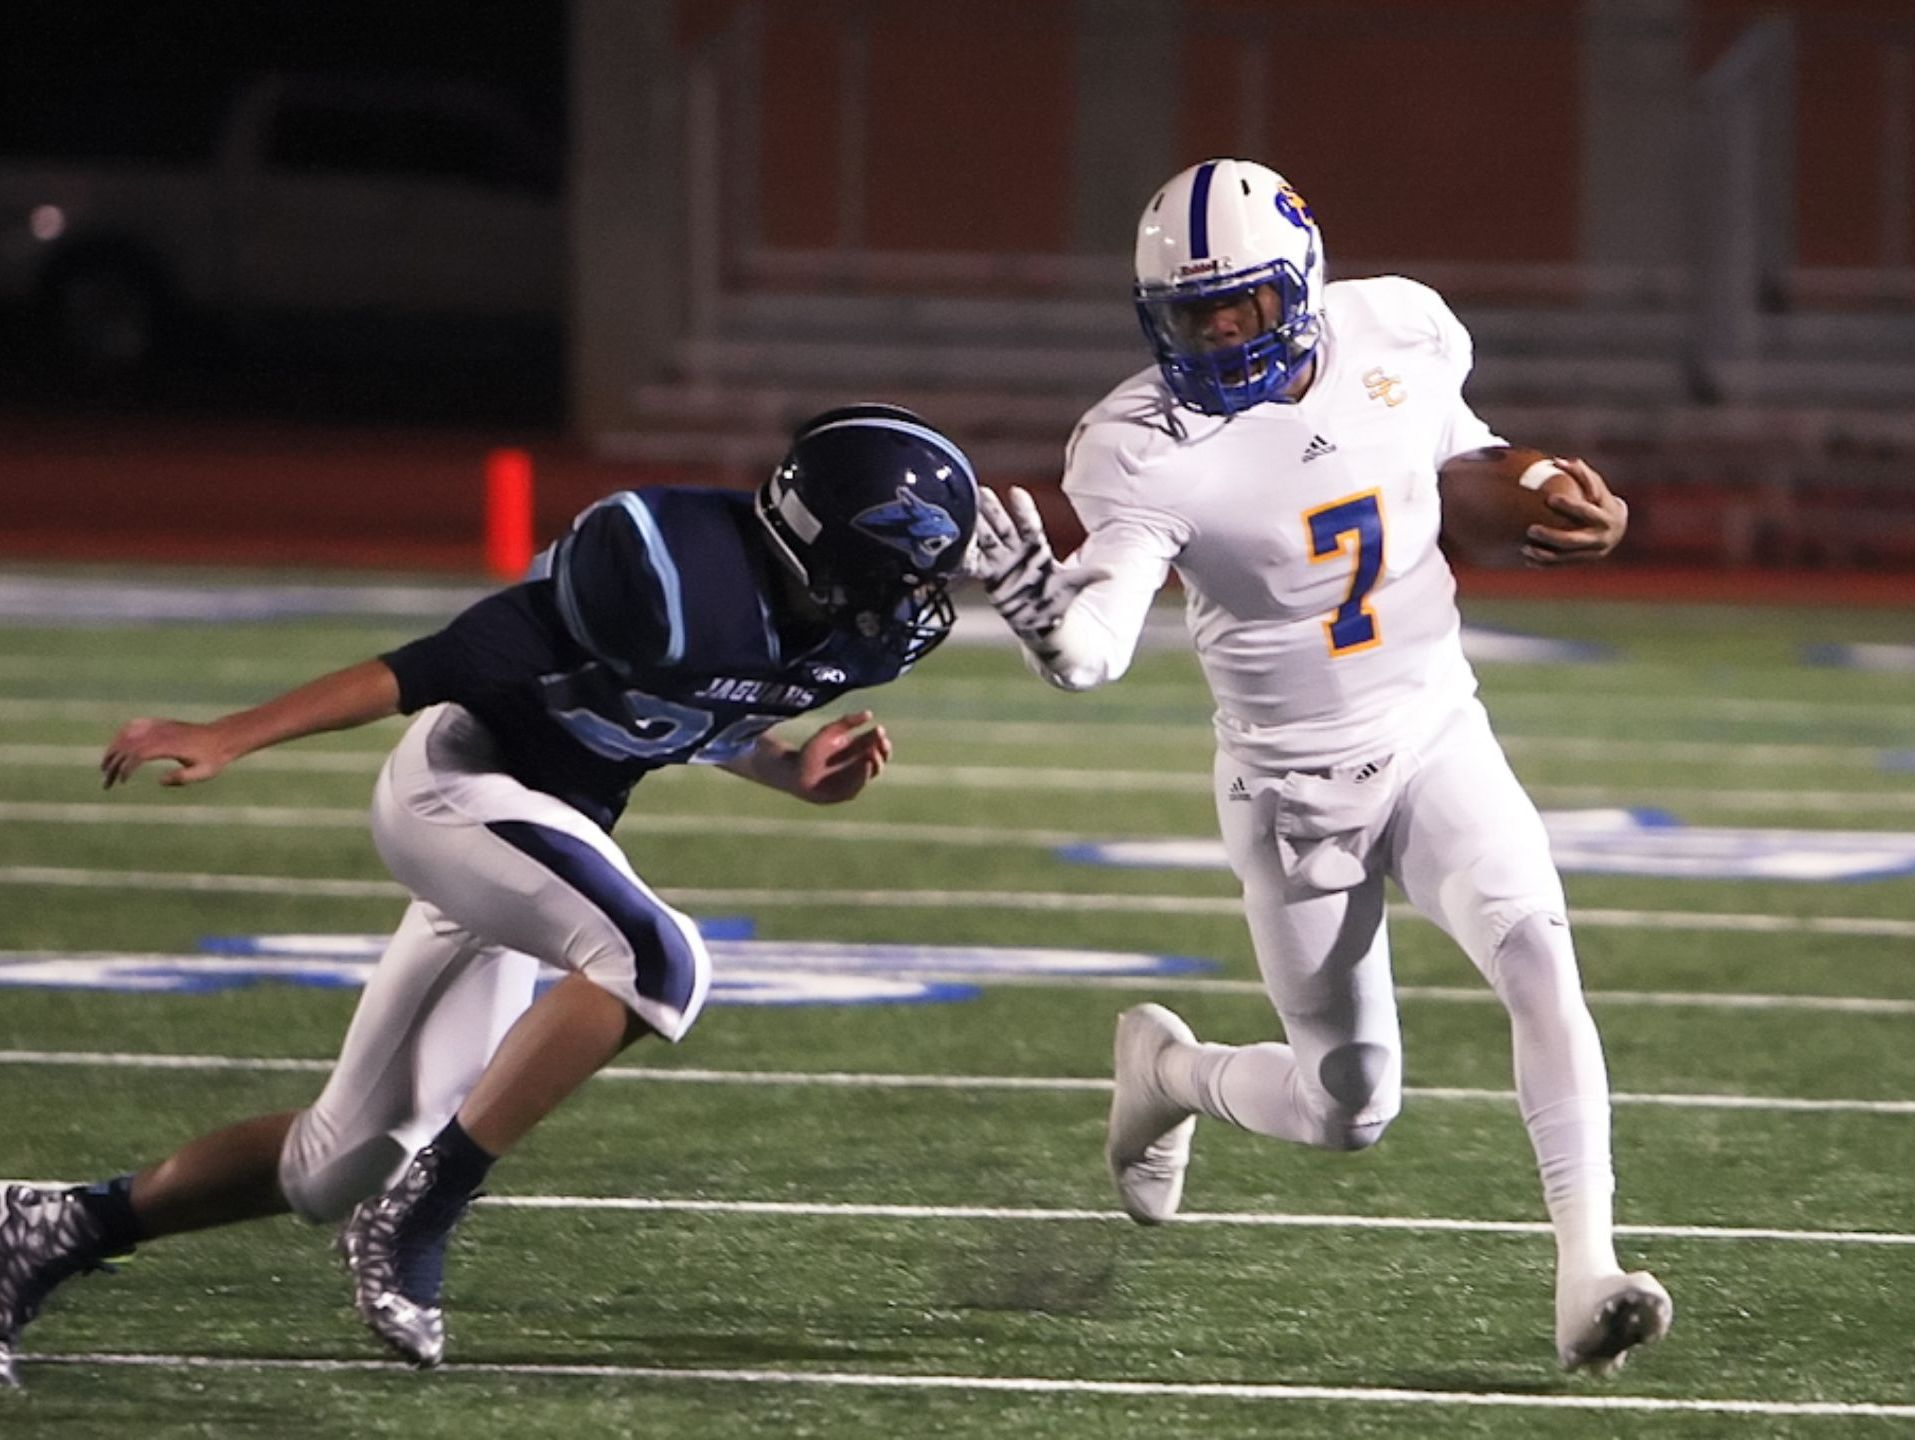 Clemens quarterback Frank Harris, on the run against Johnson in the playoffs, has amassed more than 4,500 yards of total offense and accounted for 53 TDs this season.